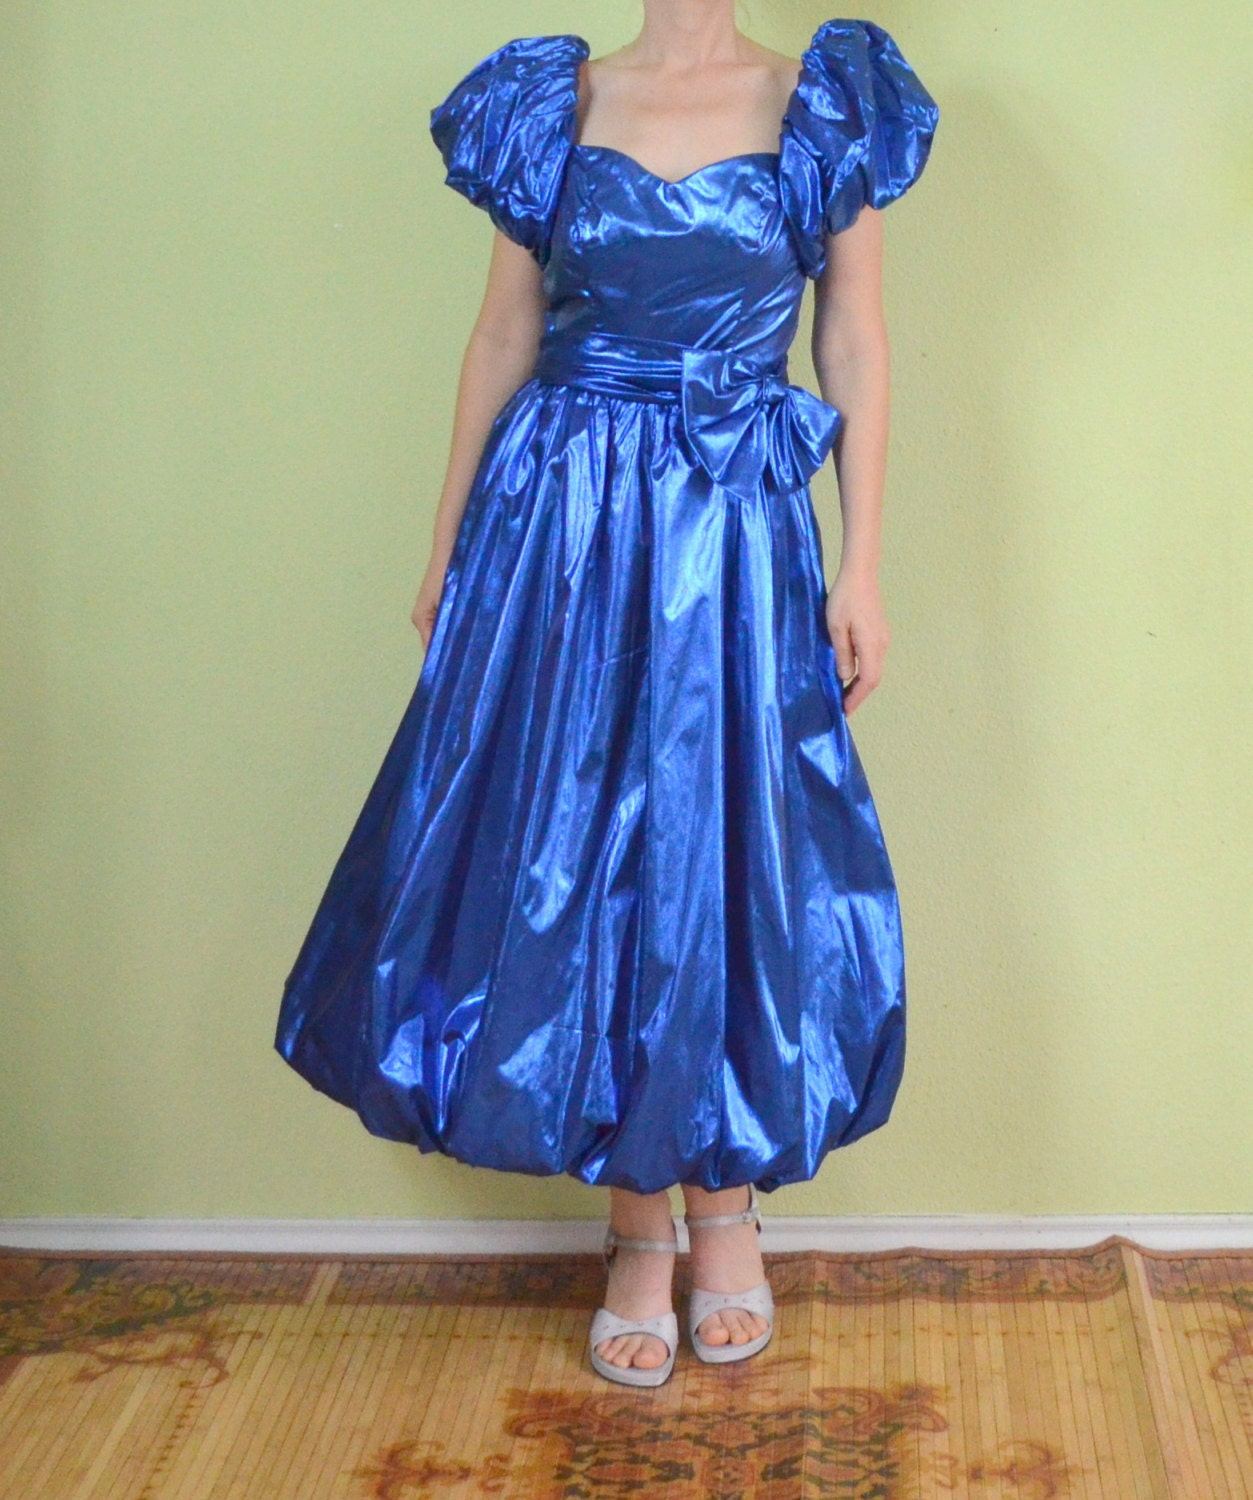 Vintage Wedding Dresses 80s: Vintage 80s Prom Dress Blue Metallic Cocktail Dance Party